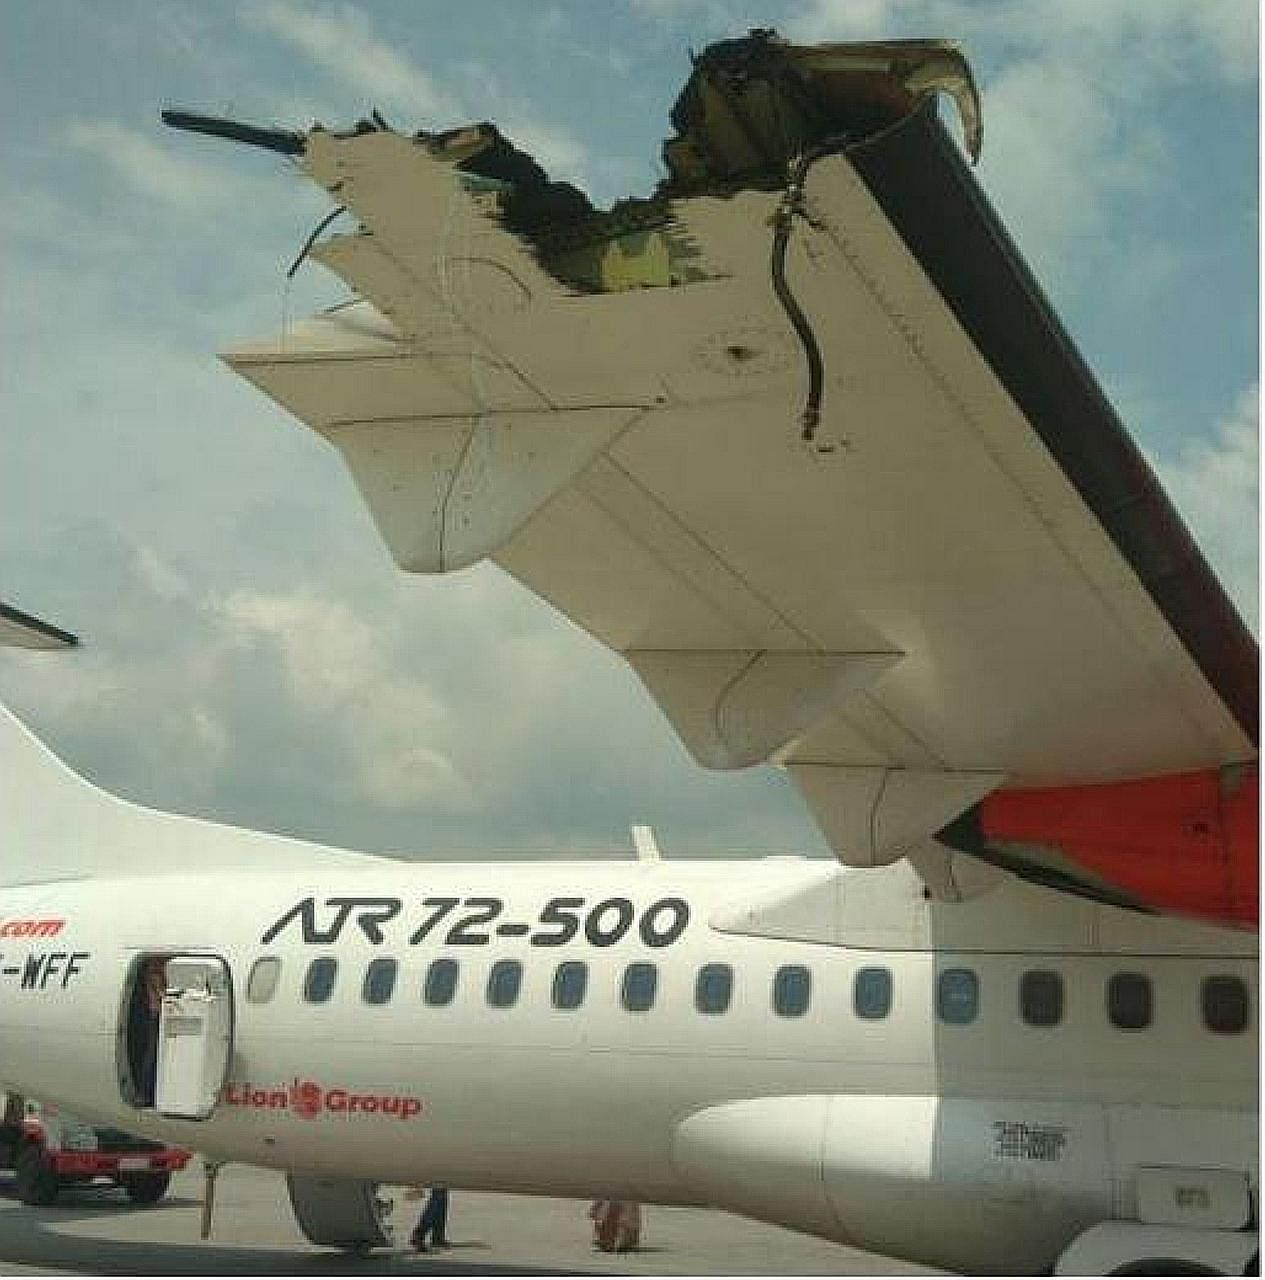 Pictures on social media showed the damaged wings of a Wings Air ATR-72 and a Lion Air plane. The incident took place yesterday at the Kualanamu International Airport in Medan, North Sumatra.